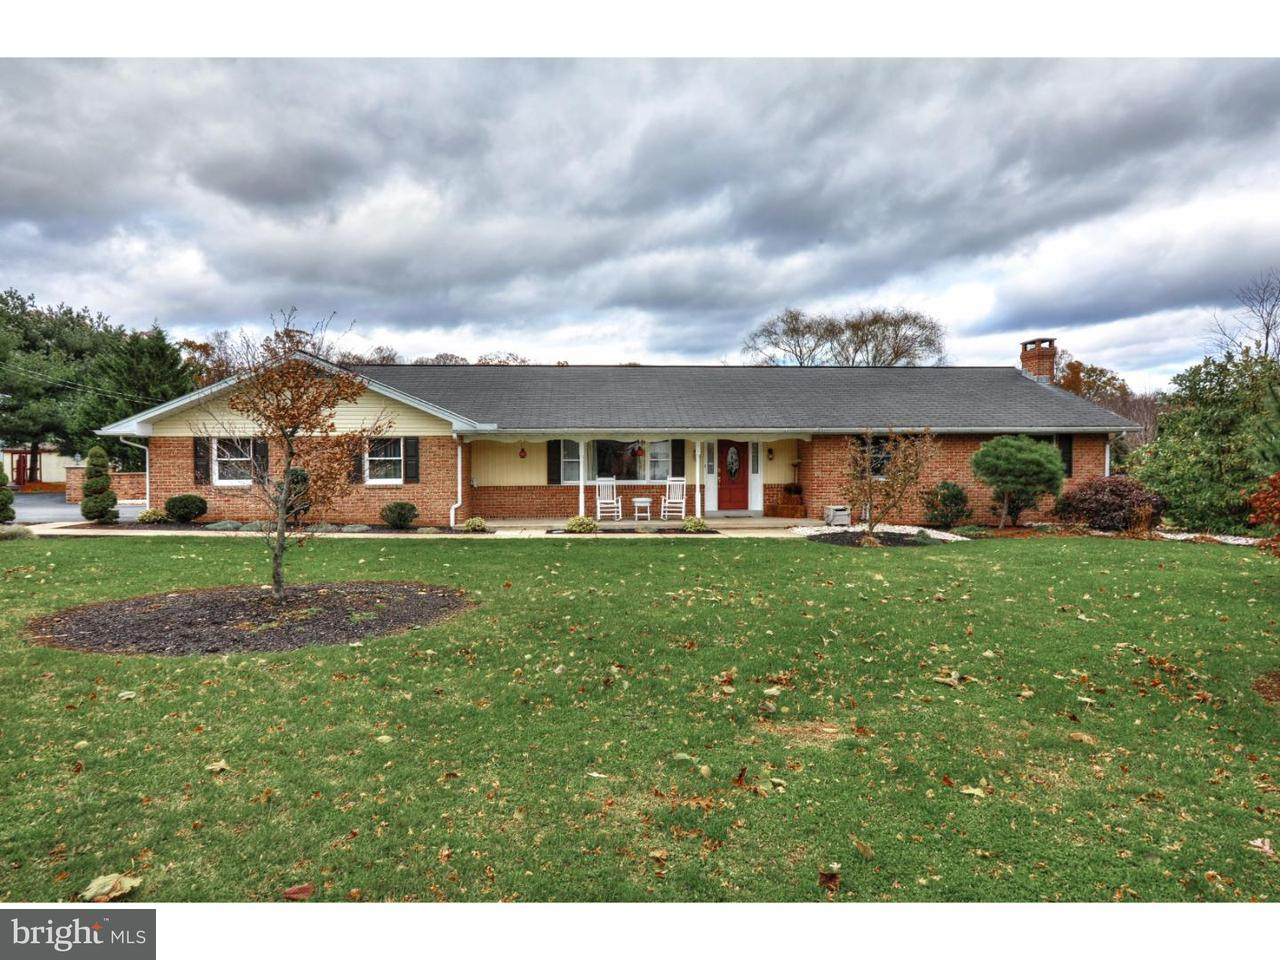 Single Family Home for Sale at 124 KUTZ Road Fleetwood, Pennsylvania 19522 United States